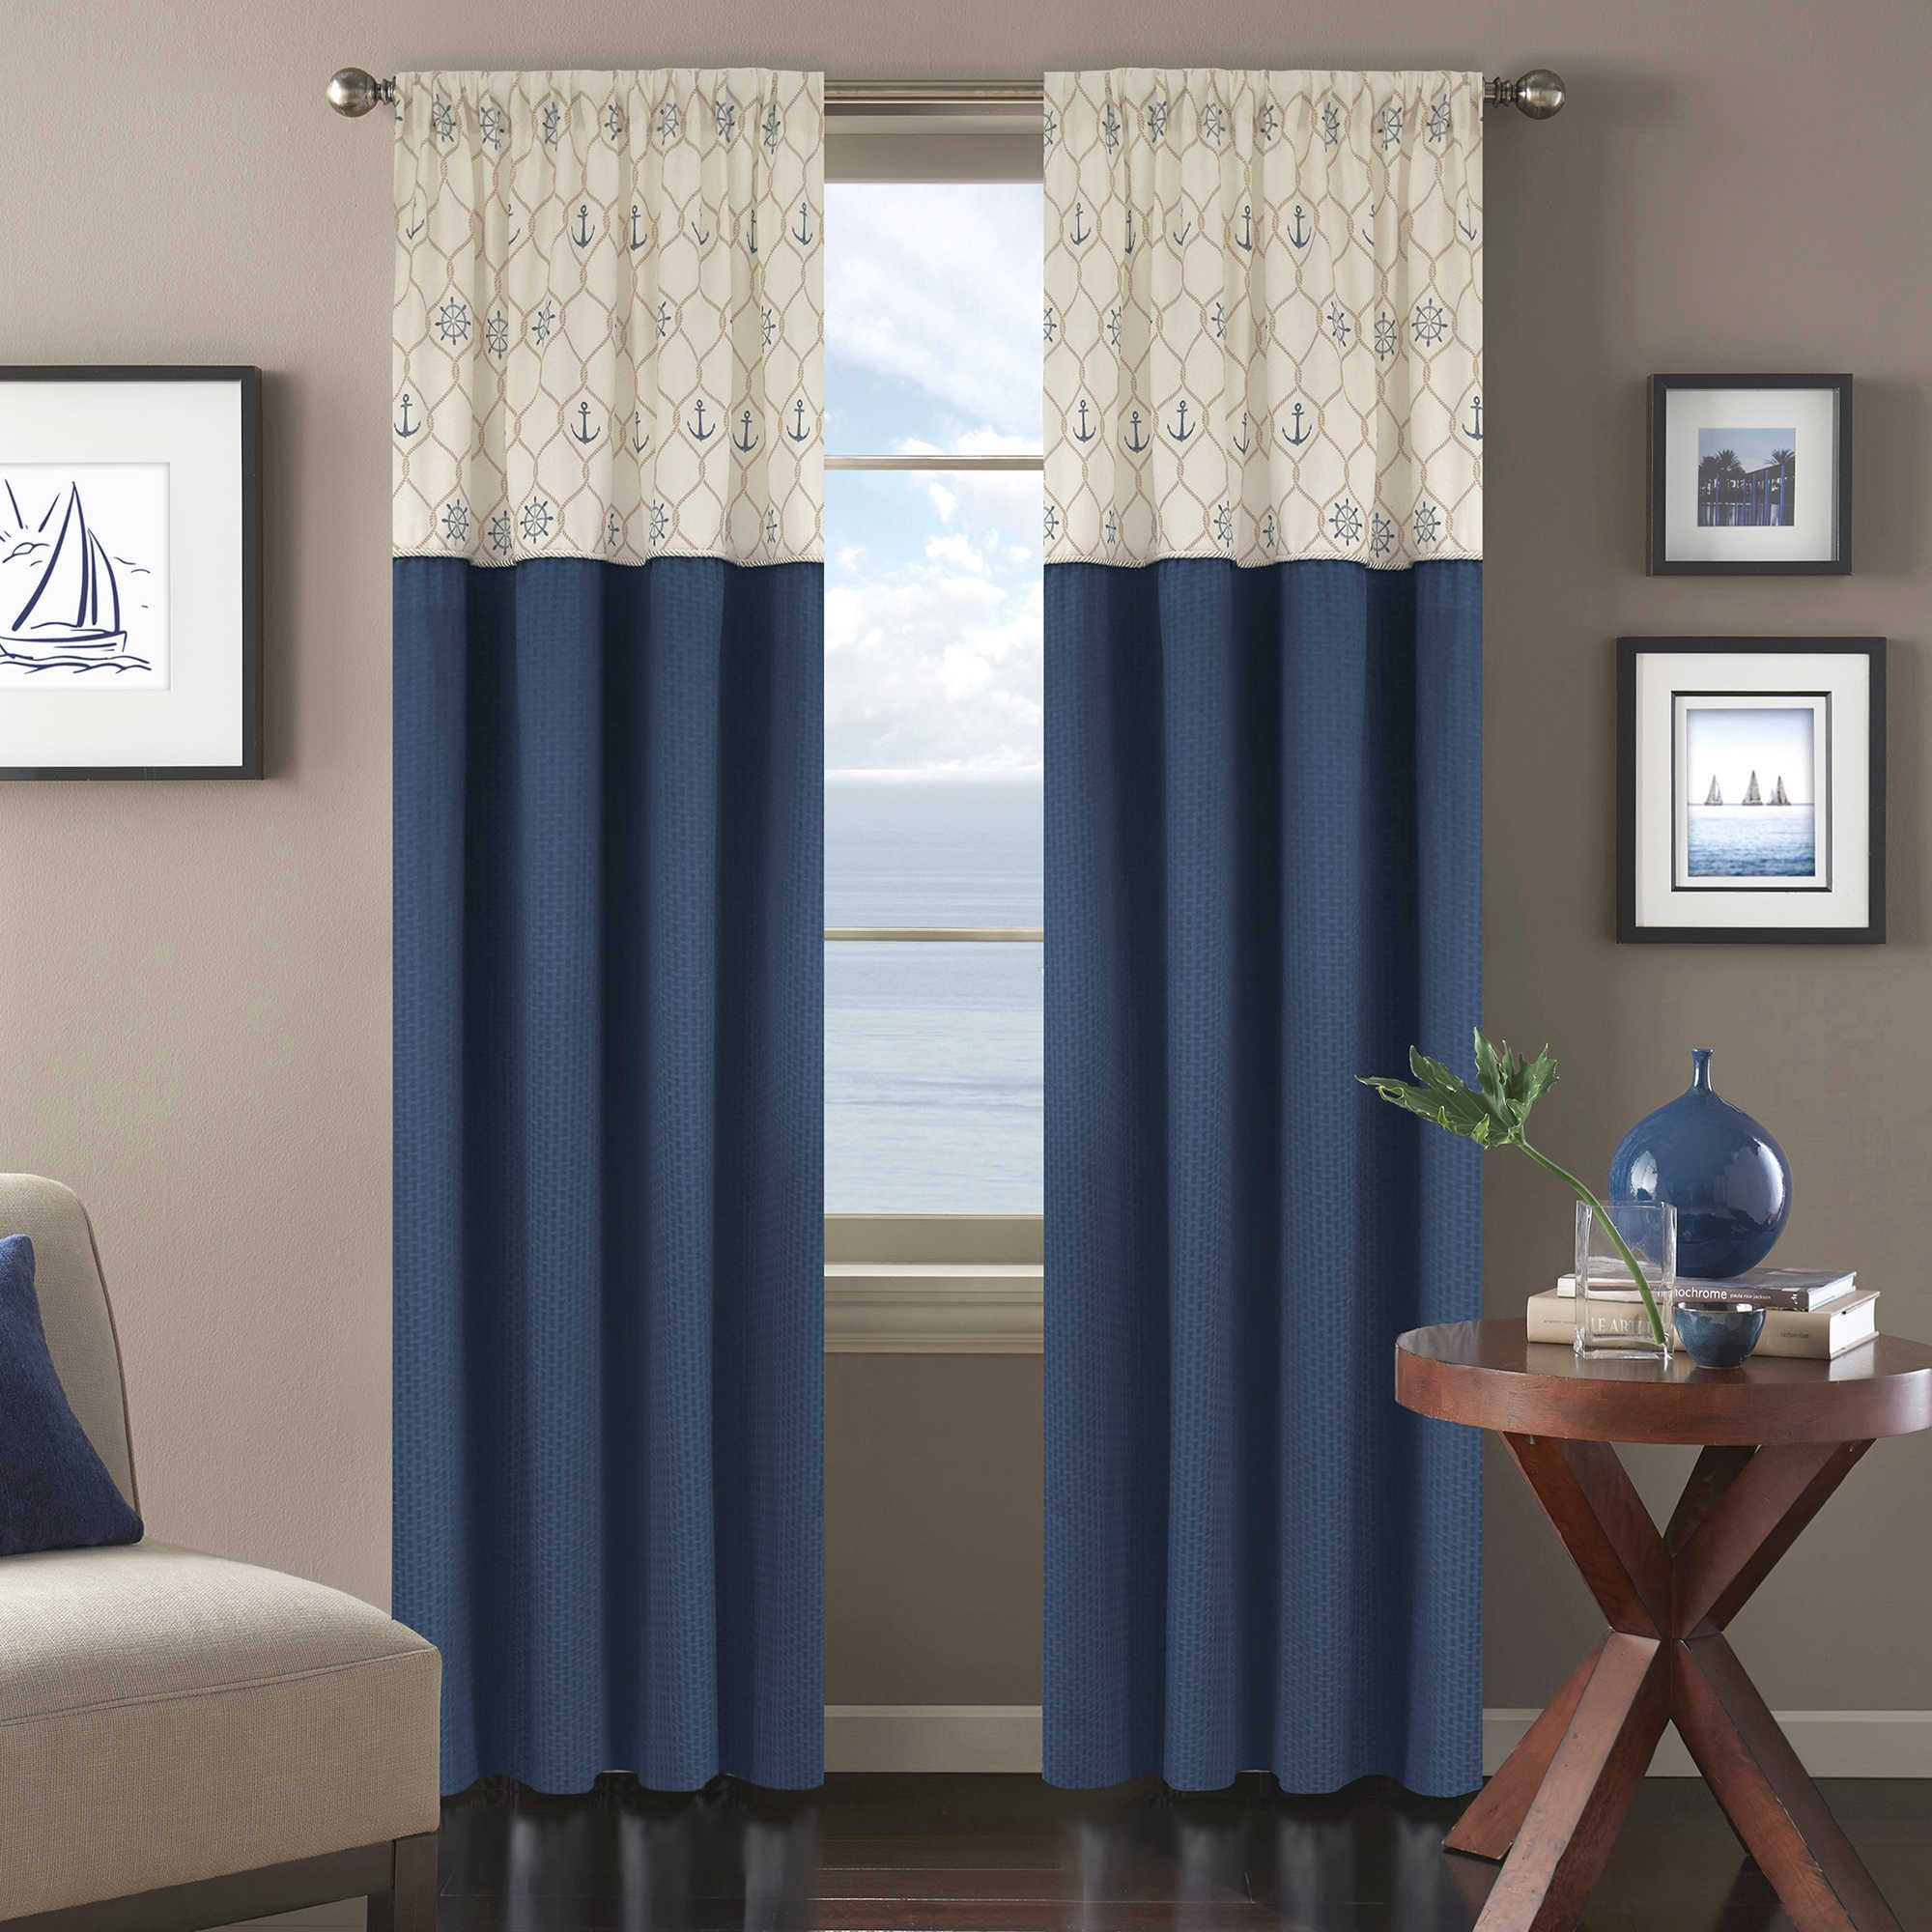 Bed bath and beyond window curtains  sailing away inch window panel in blue  living room ideas